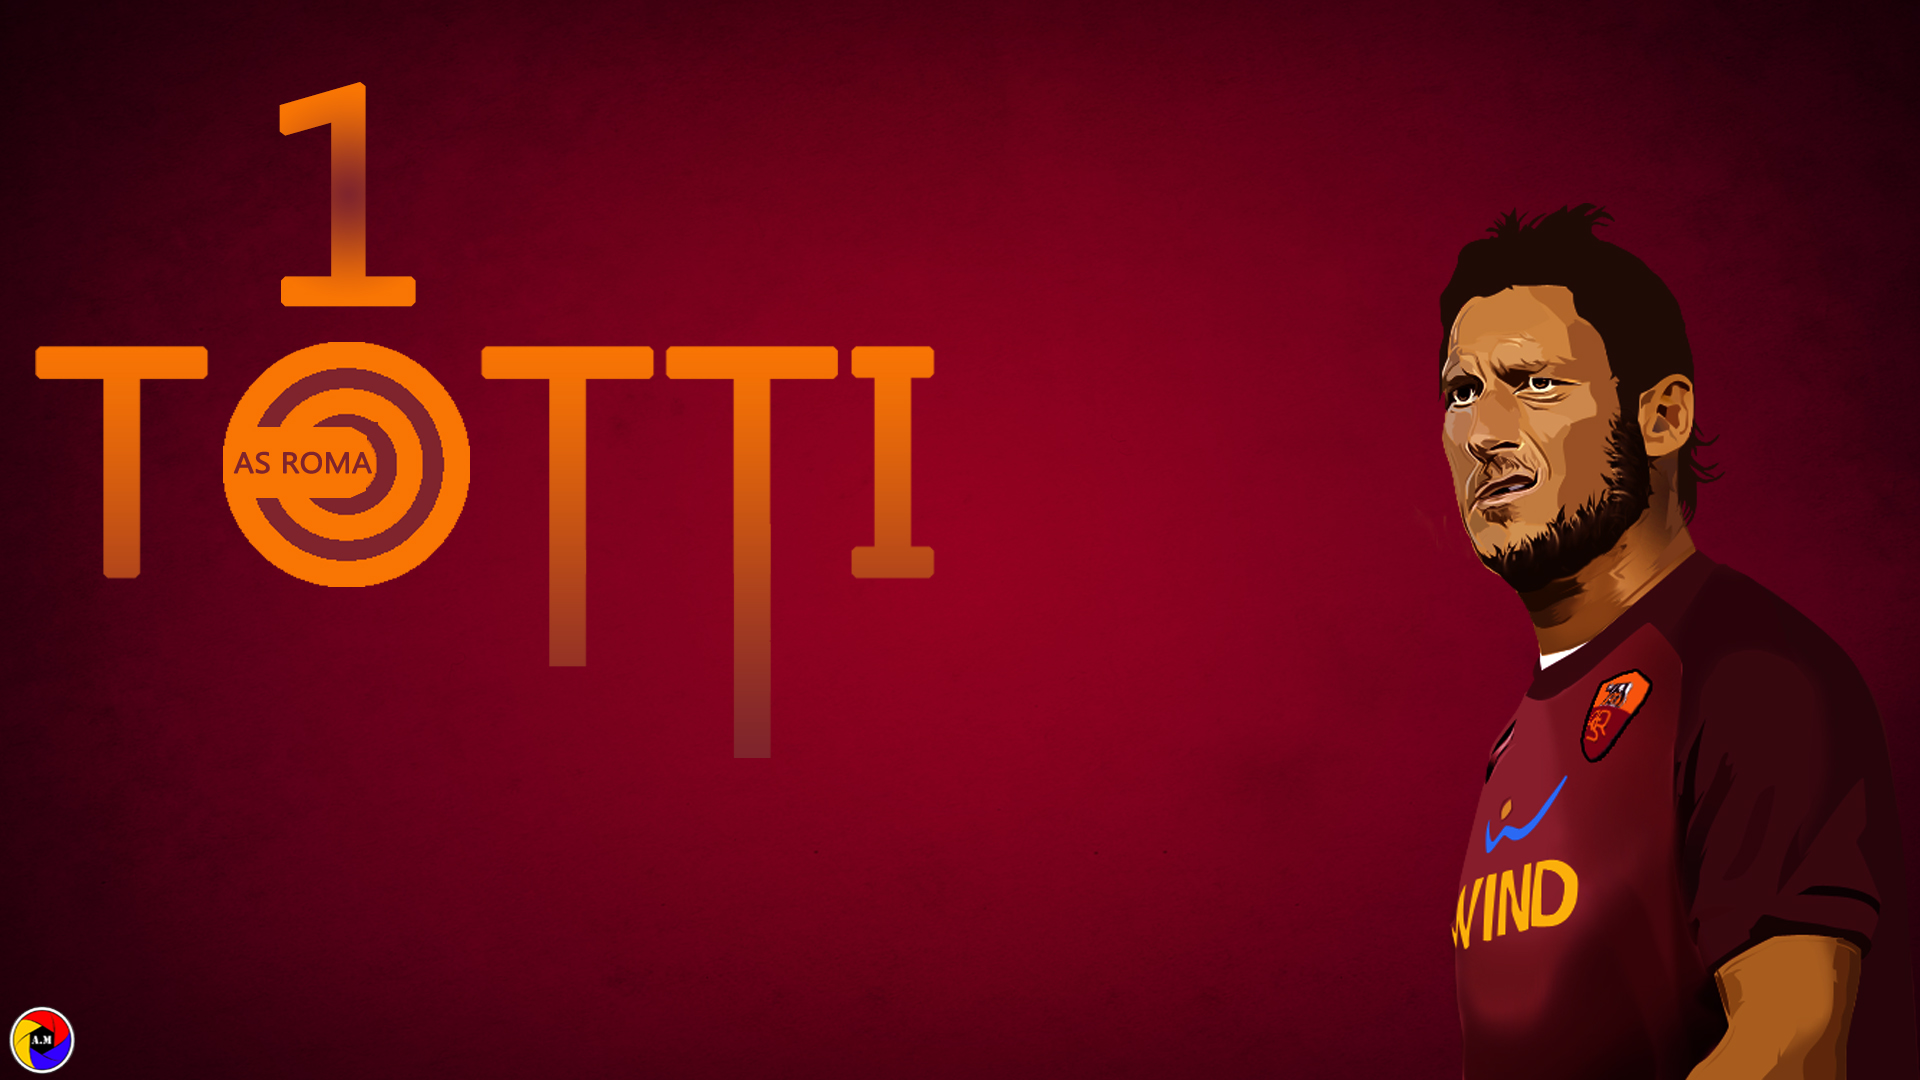 Francesco Totti Cartoons Wallpaper HD